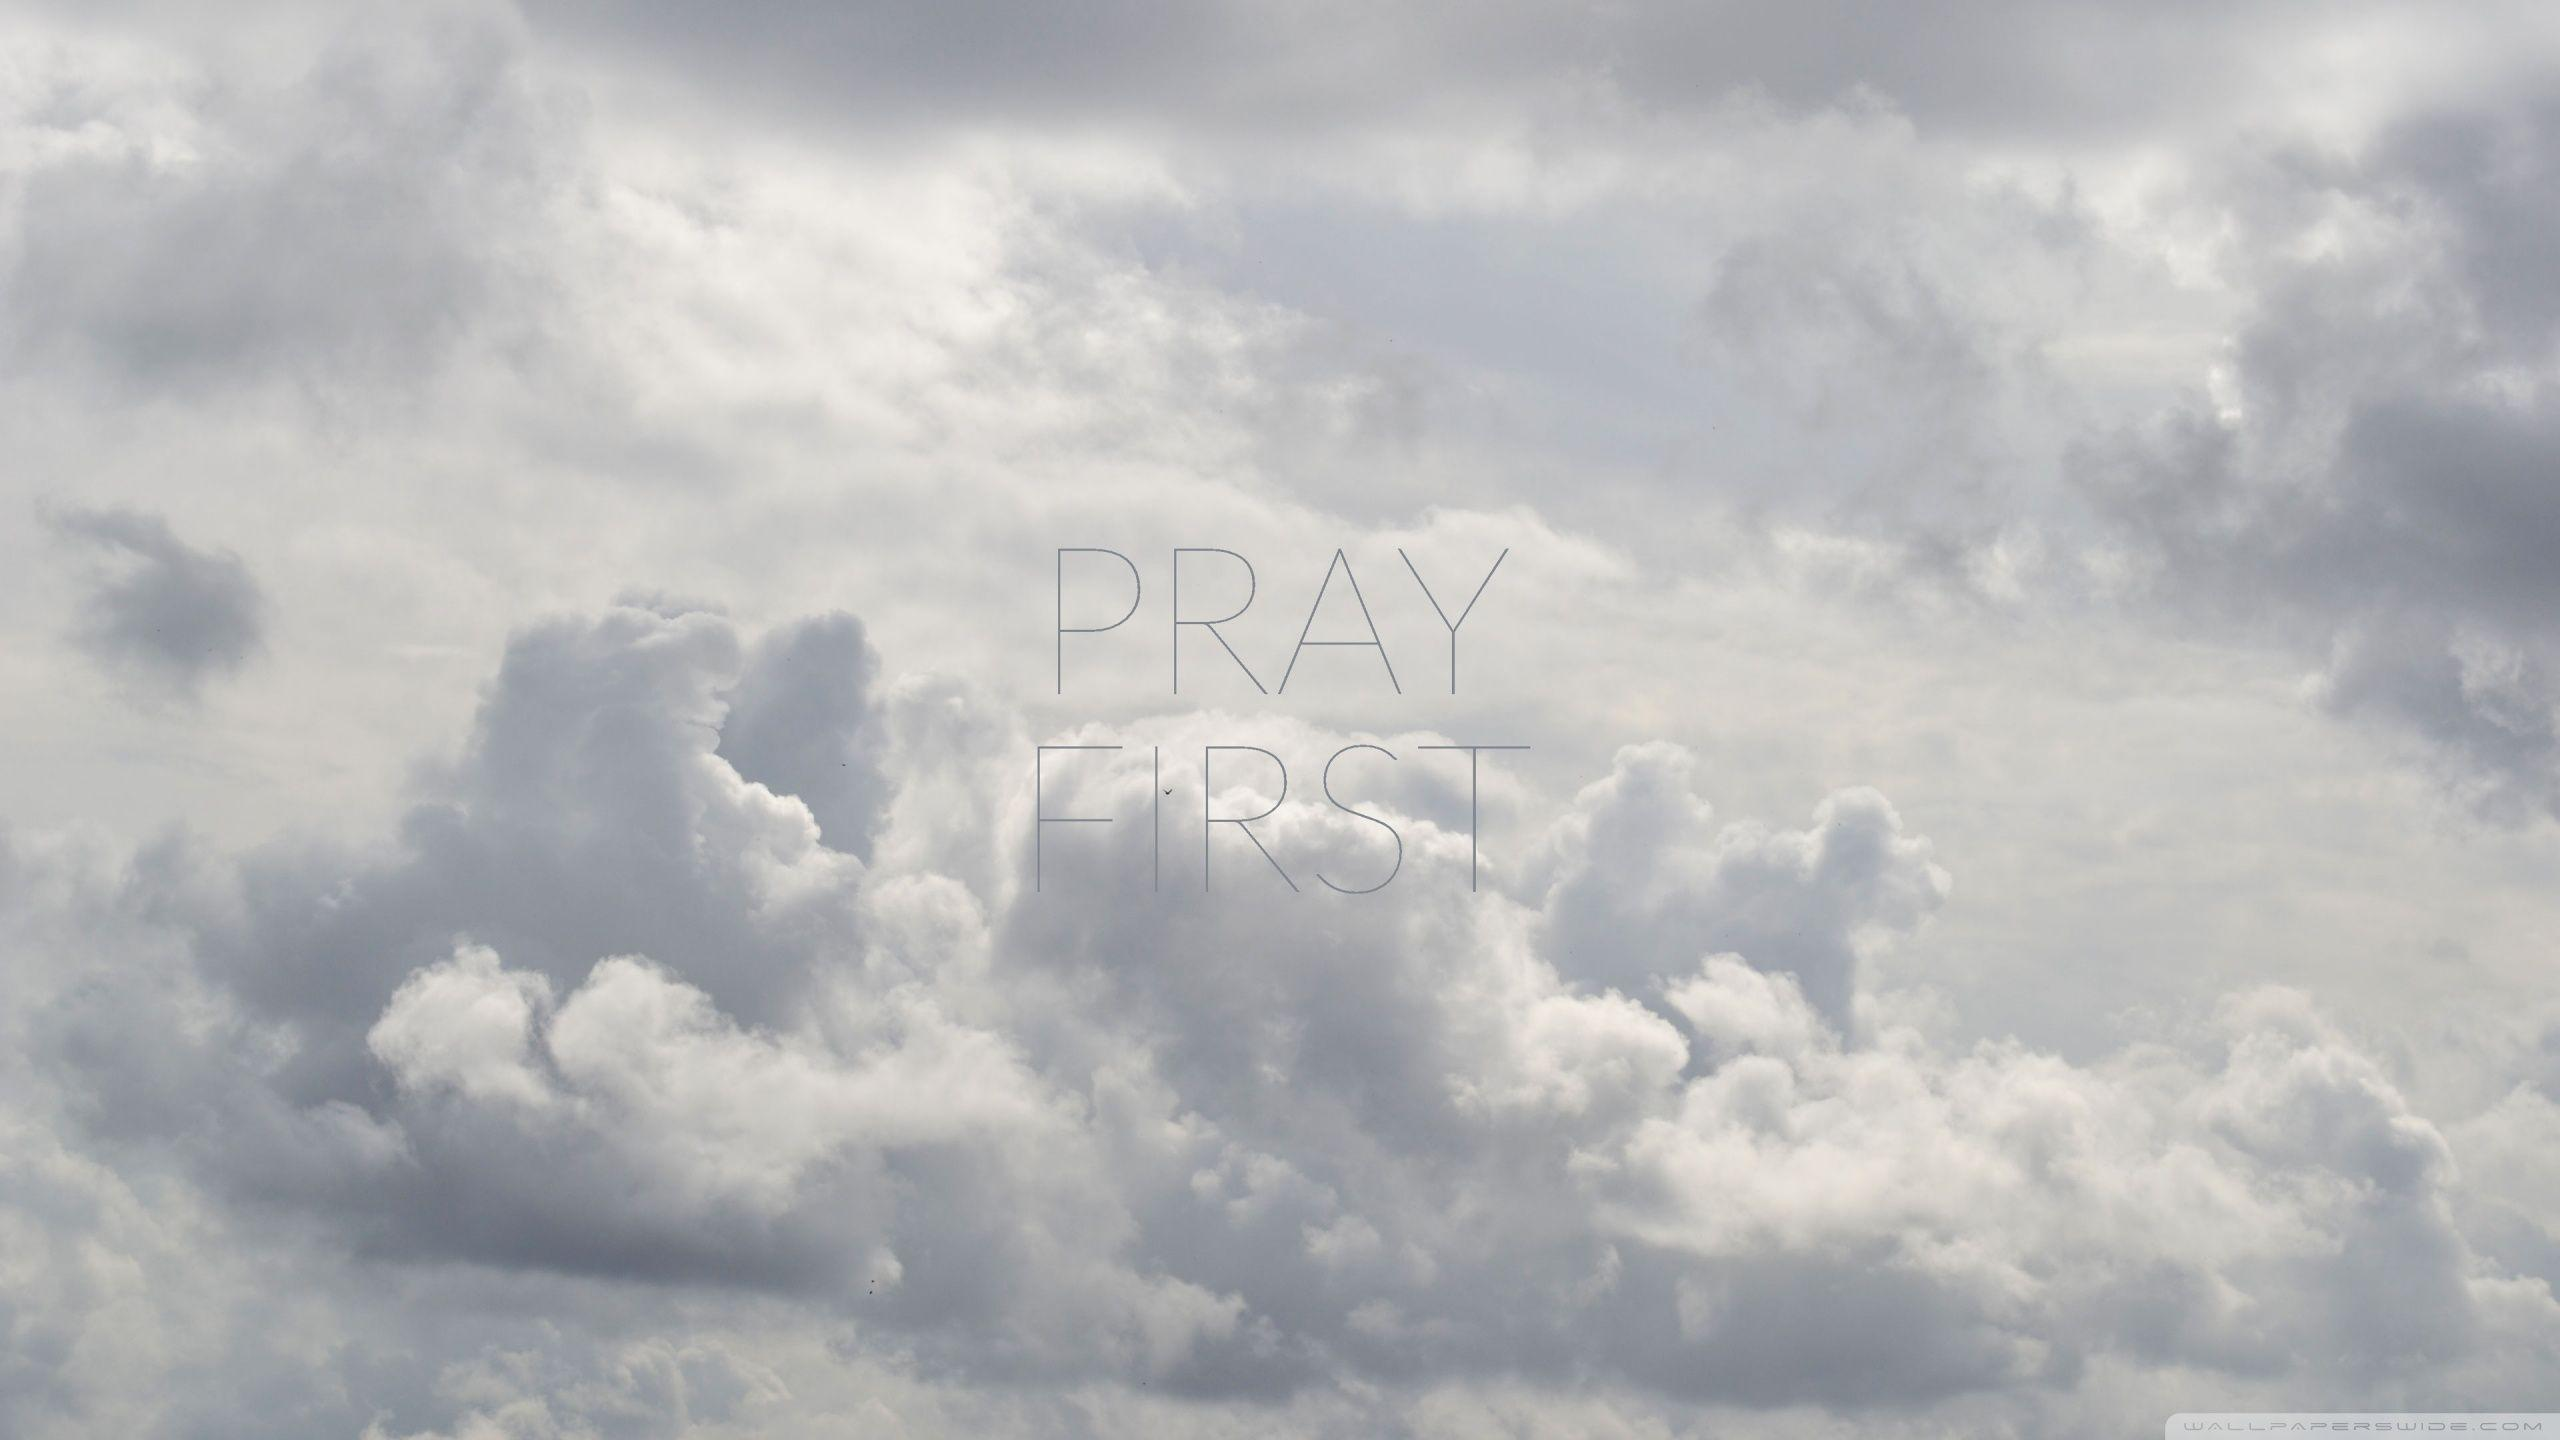 PRAY FIRST ❤ 4K HD Desktop Wallpapers for 4K Ultra HD TV • Wide